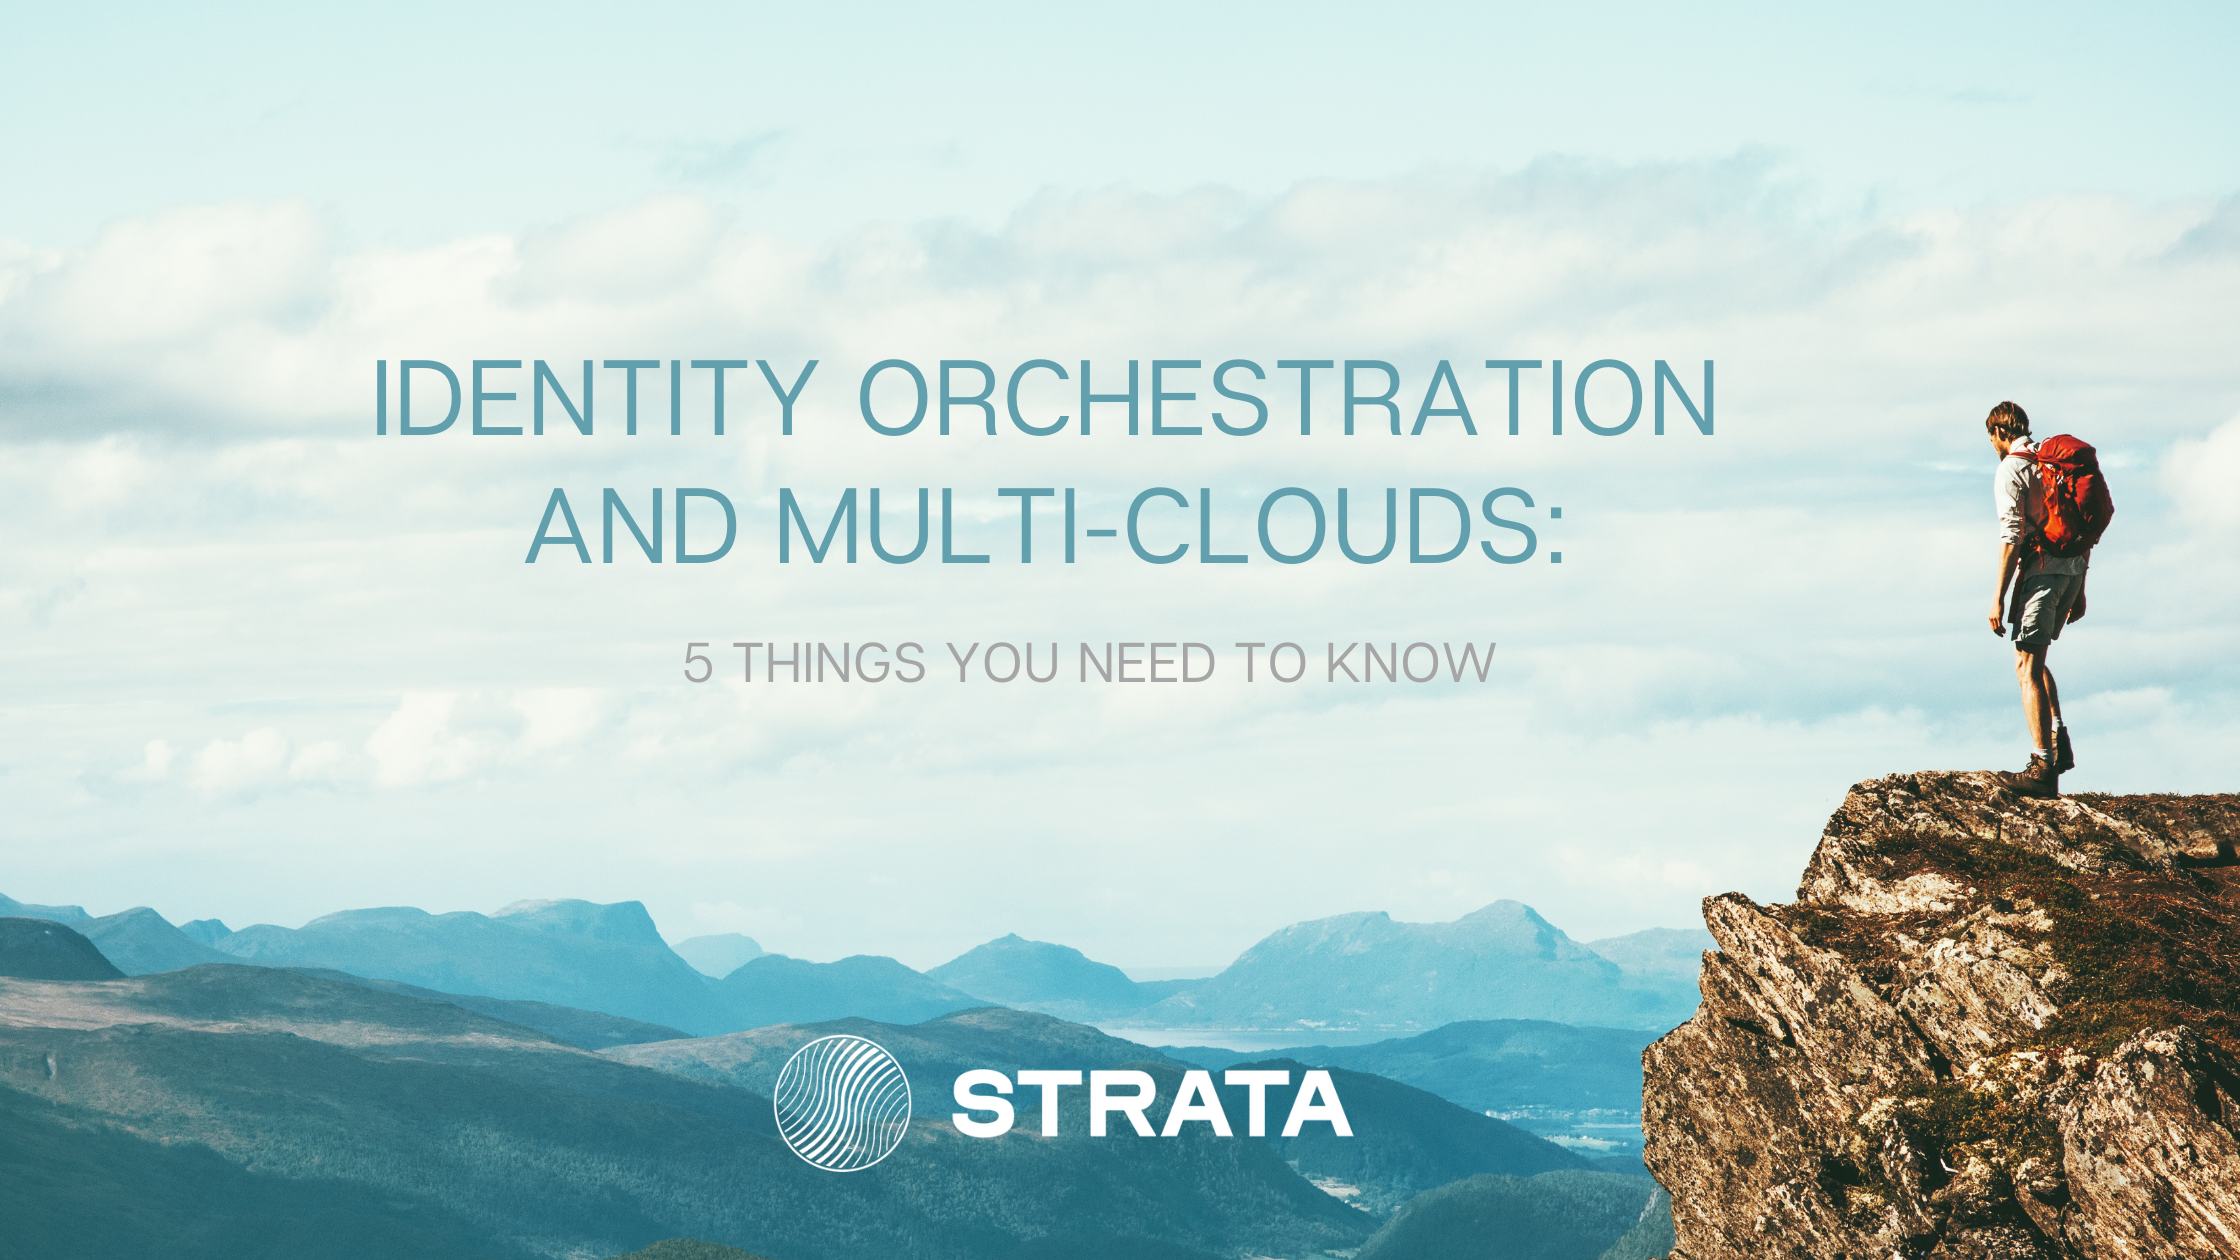 Strata Identity Orchestration Blog Post Banner Graphic